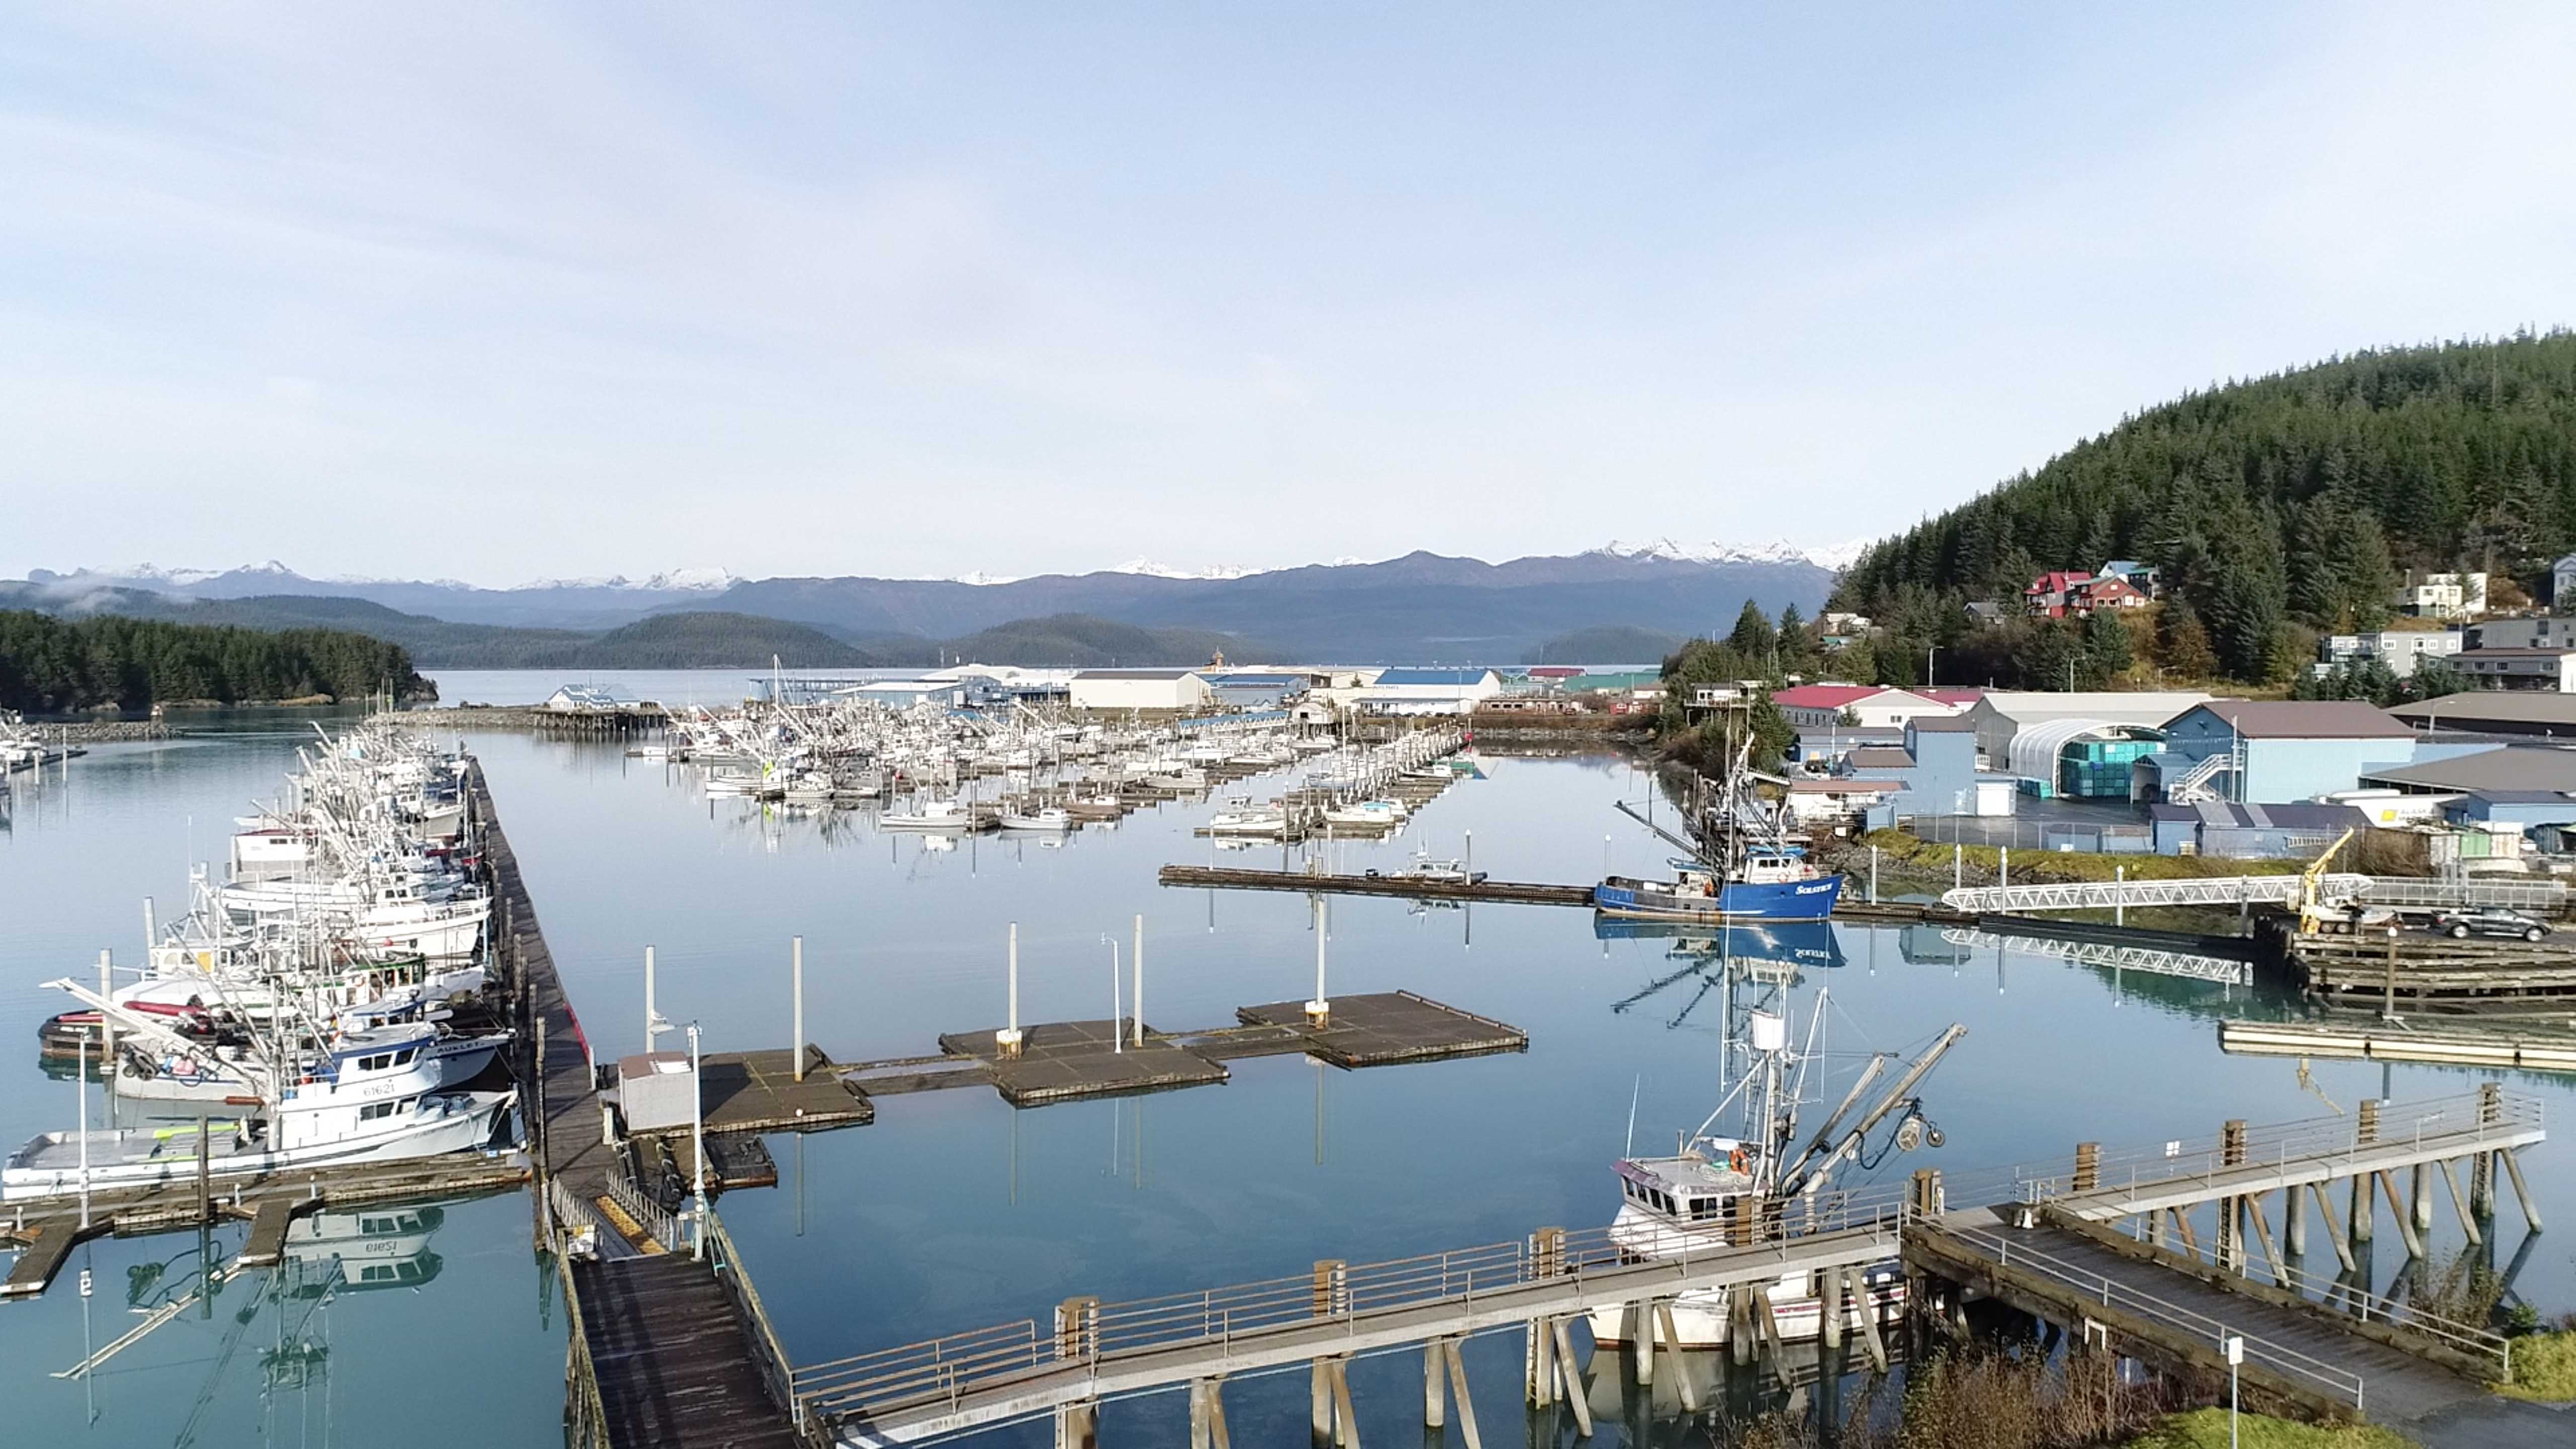 Cordova's fishing industry is a major player in Alaska's blue economy. Photo by Amanda Byrd.